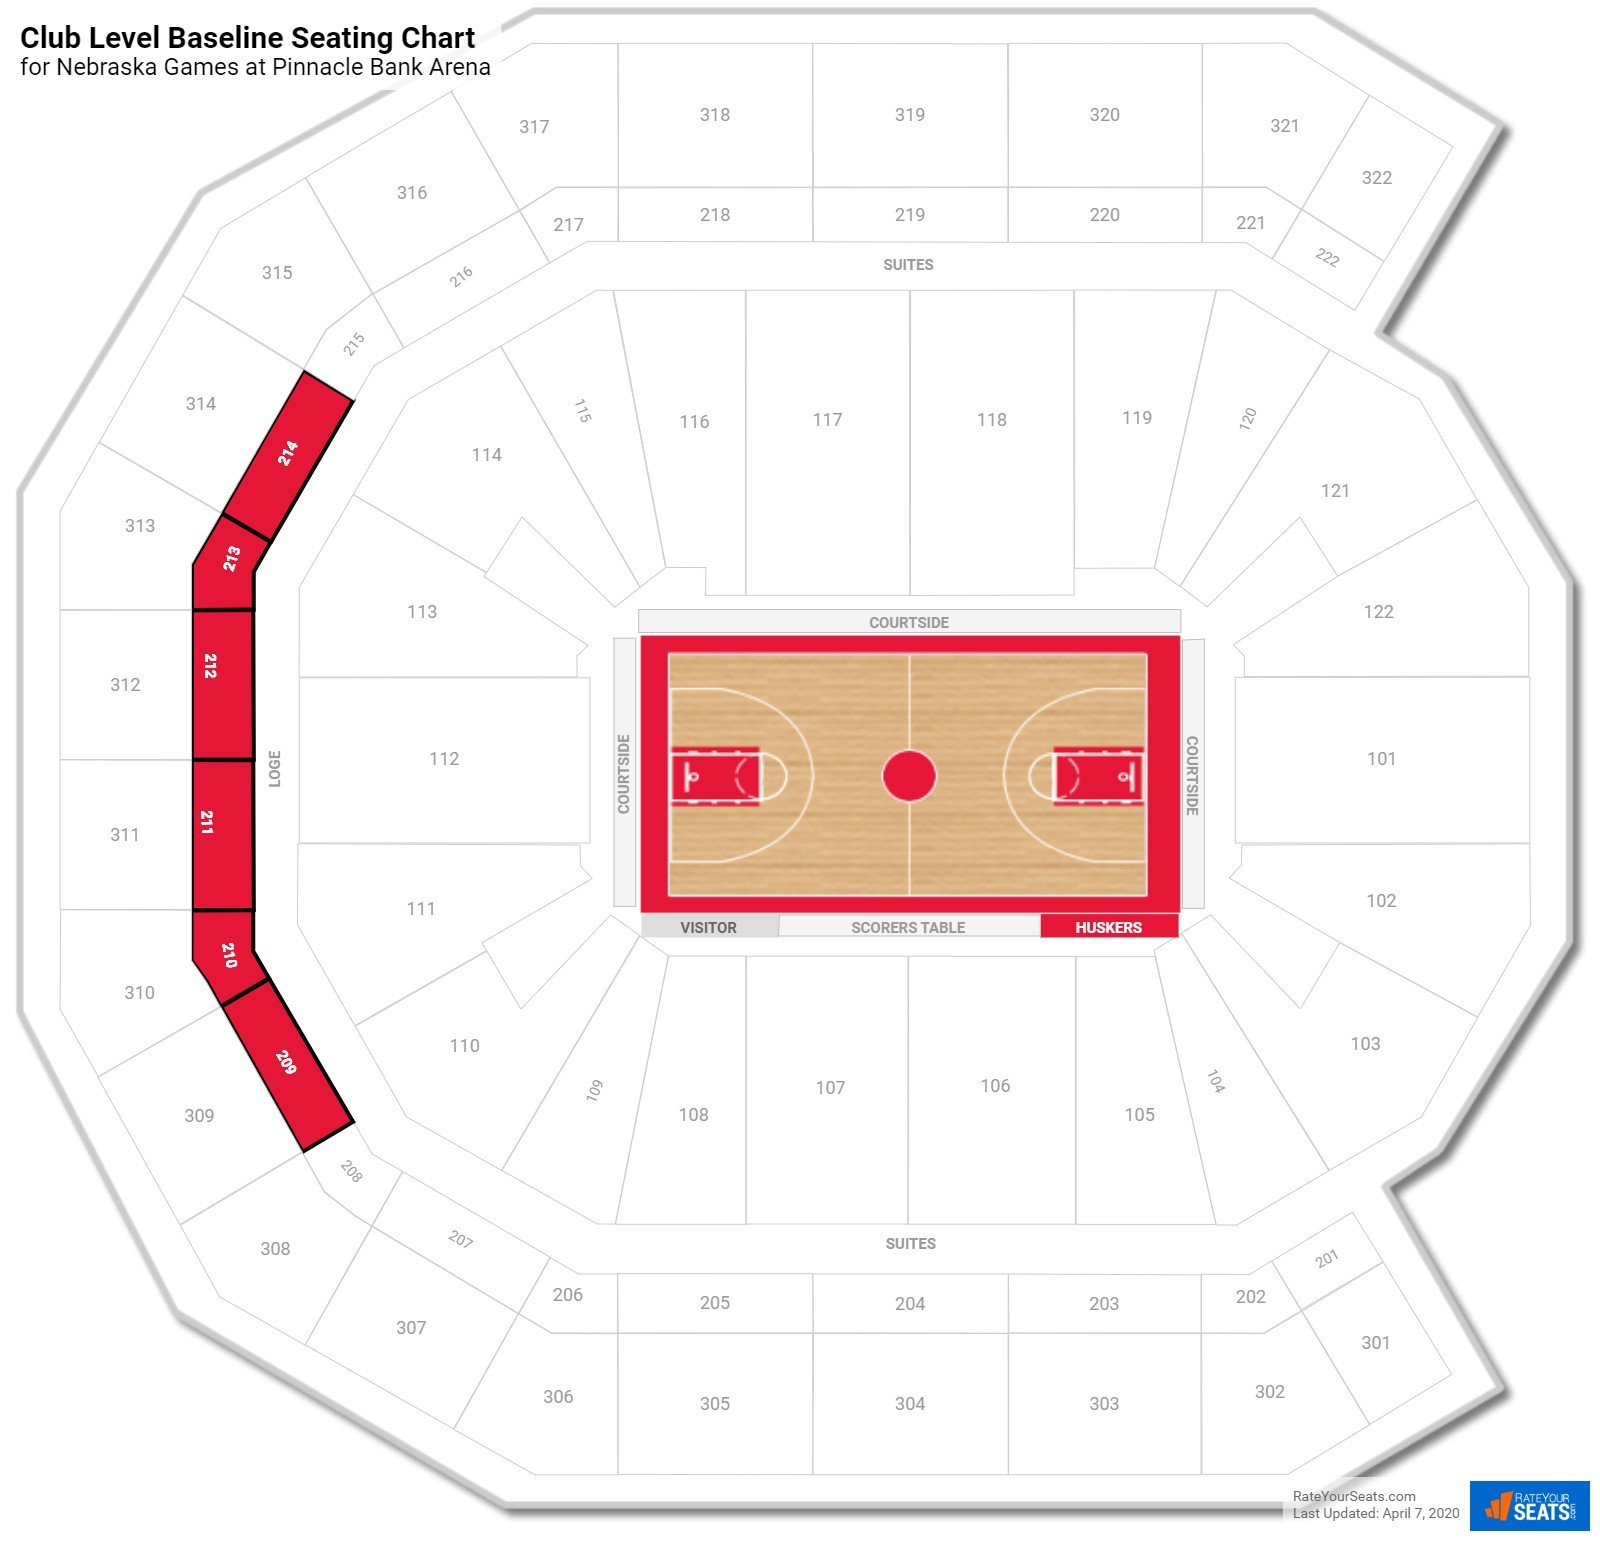 Pinnacle Bank Arena Club Level Baseline seating chart